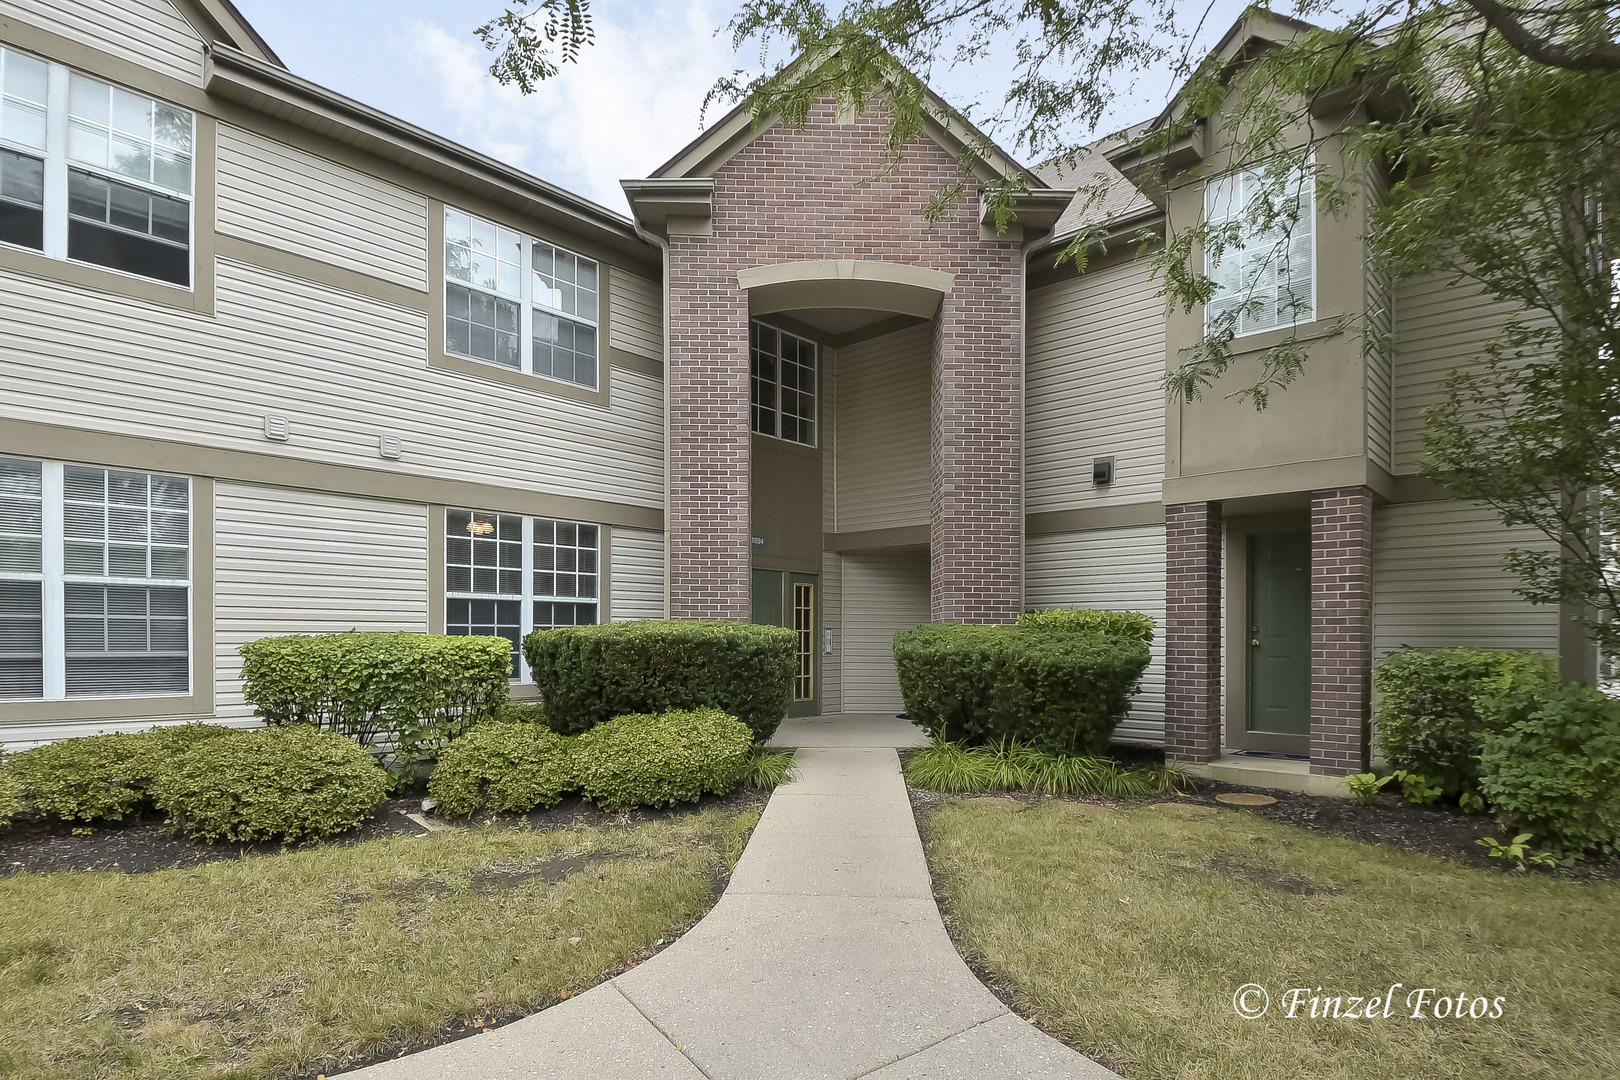 Photo for 1694 Carlemont Drive, Unit Number A, CRYSTAL LAKE, IL 60014 (MLS # 10477386)